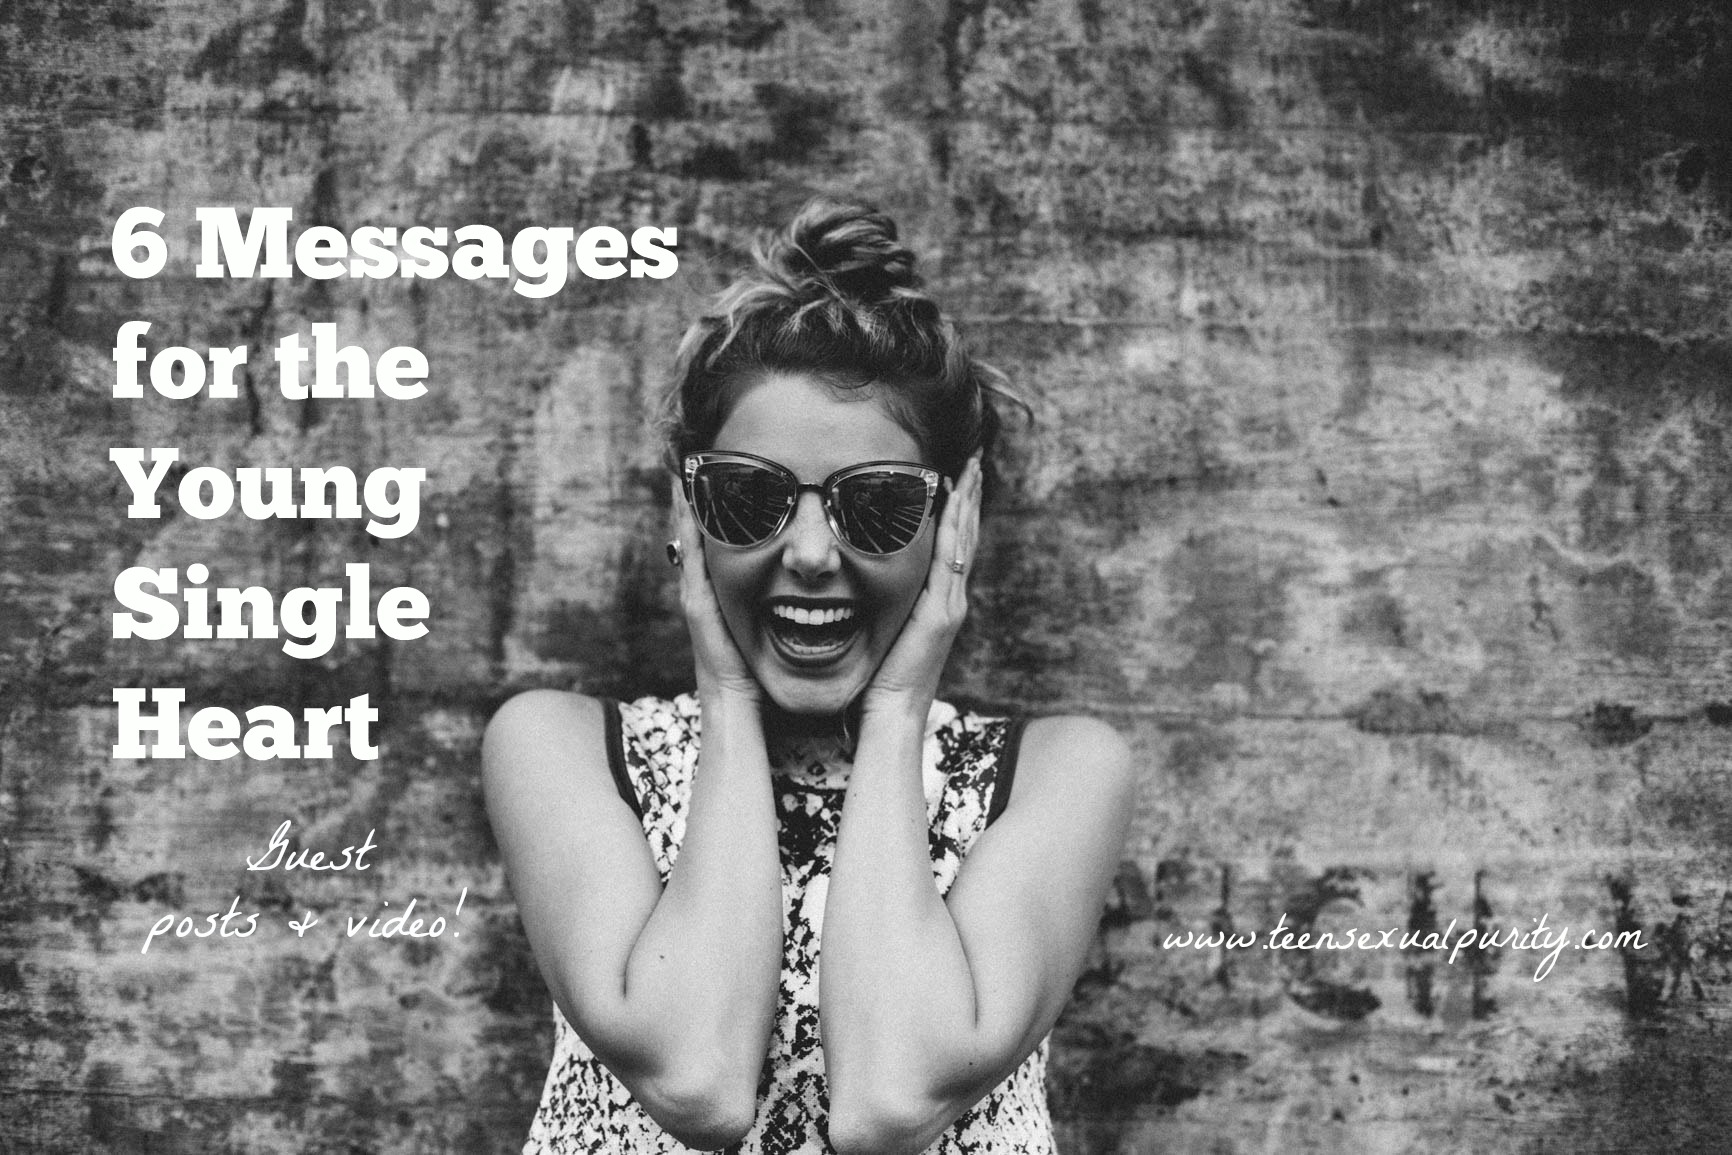 6 Messages for the Young Single Heart: Guest Posts & Video